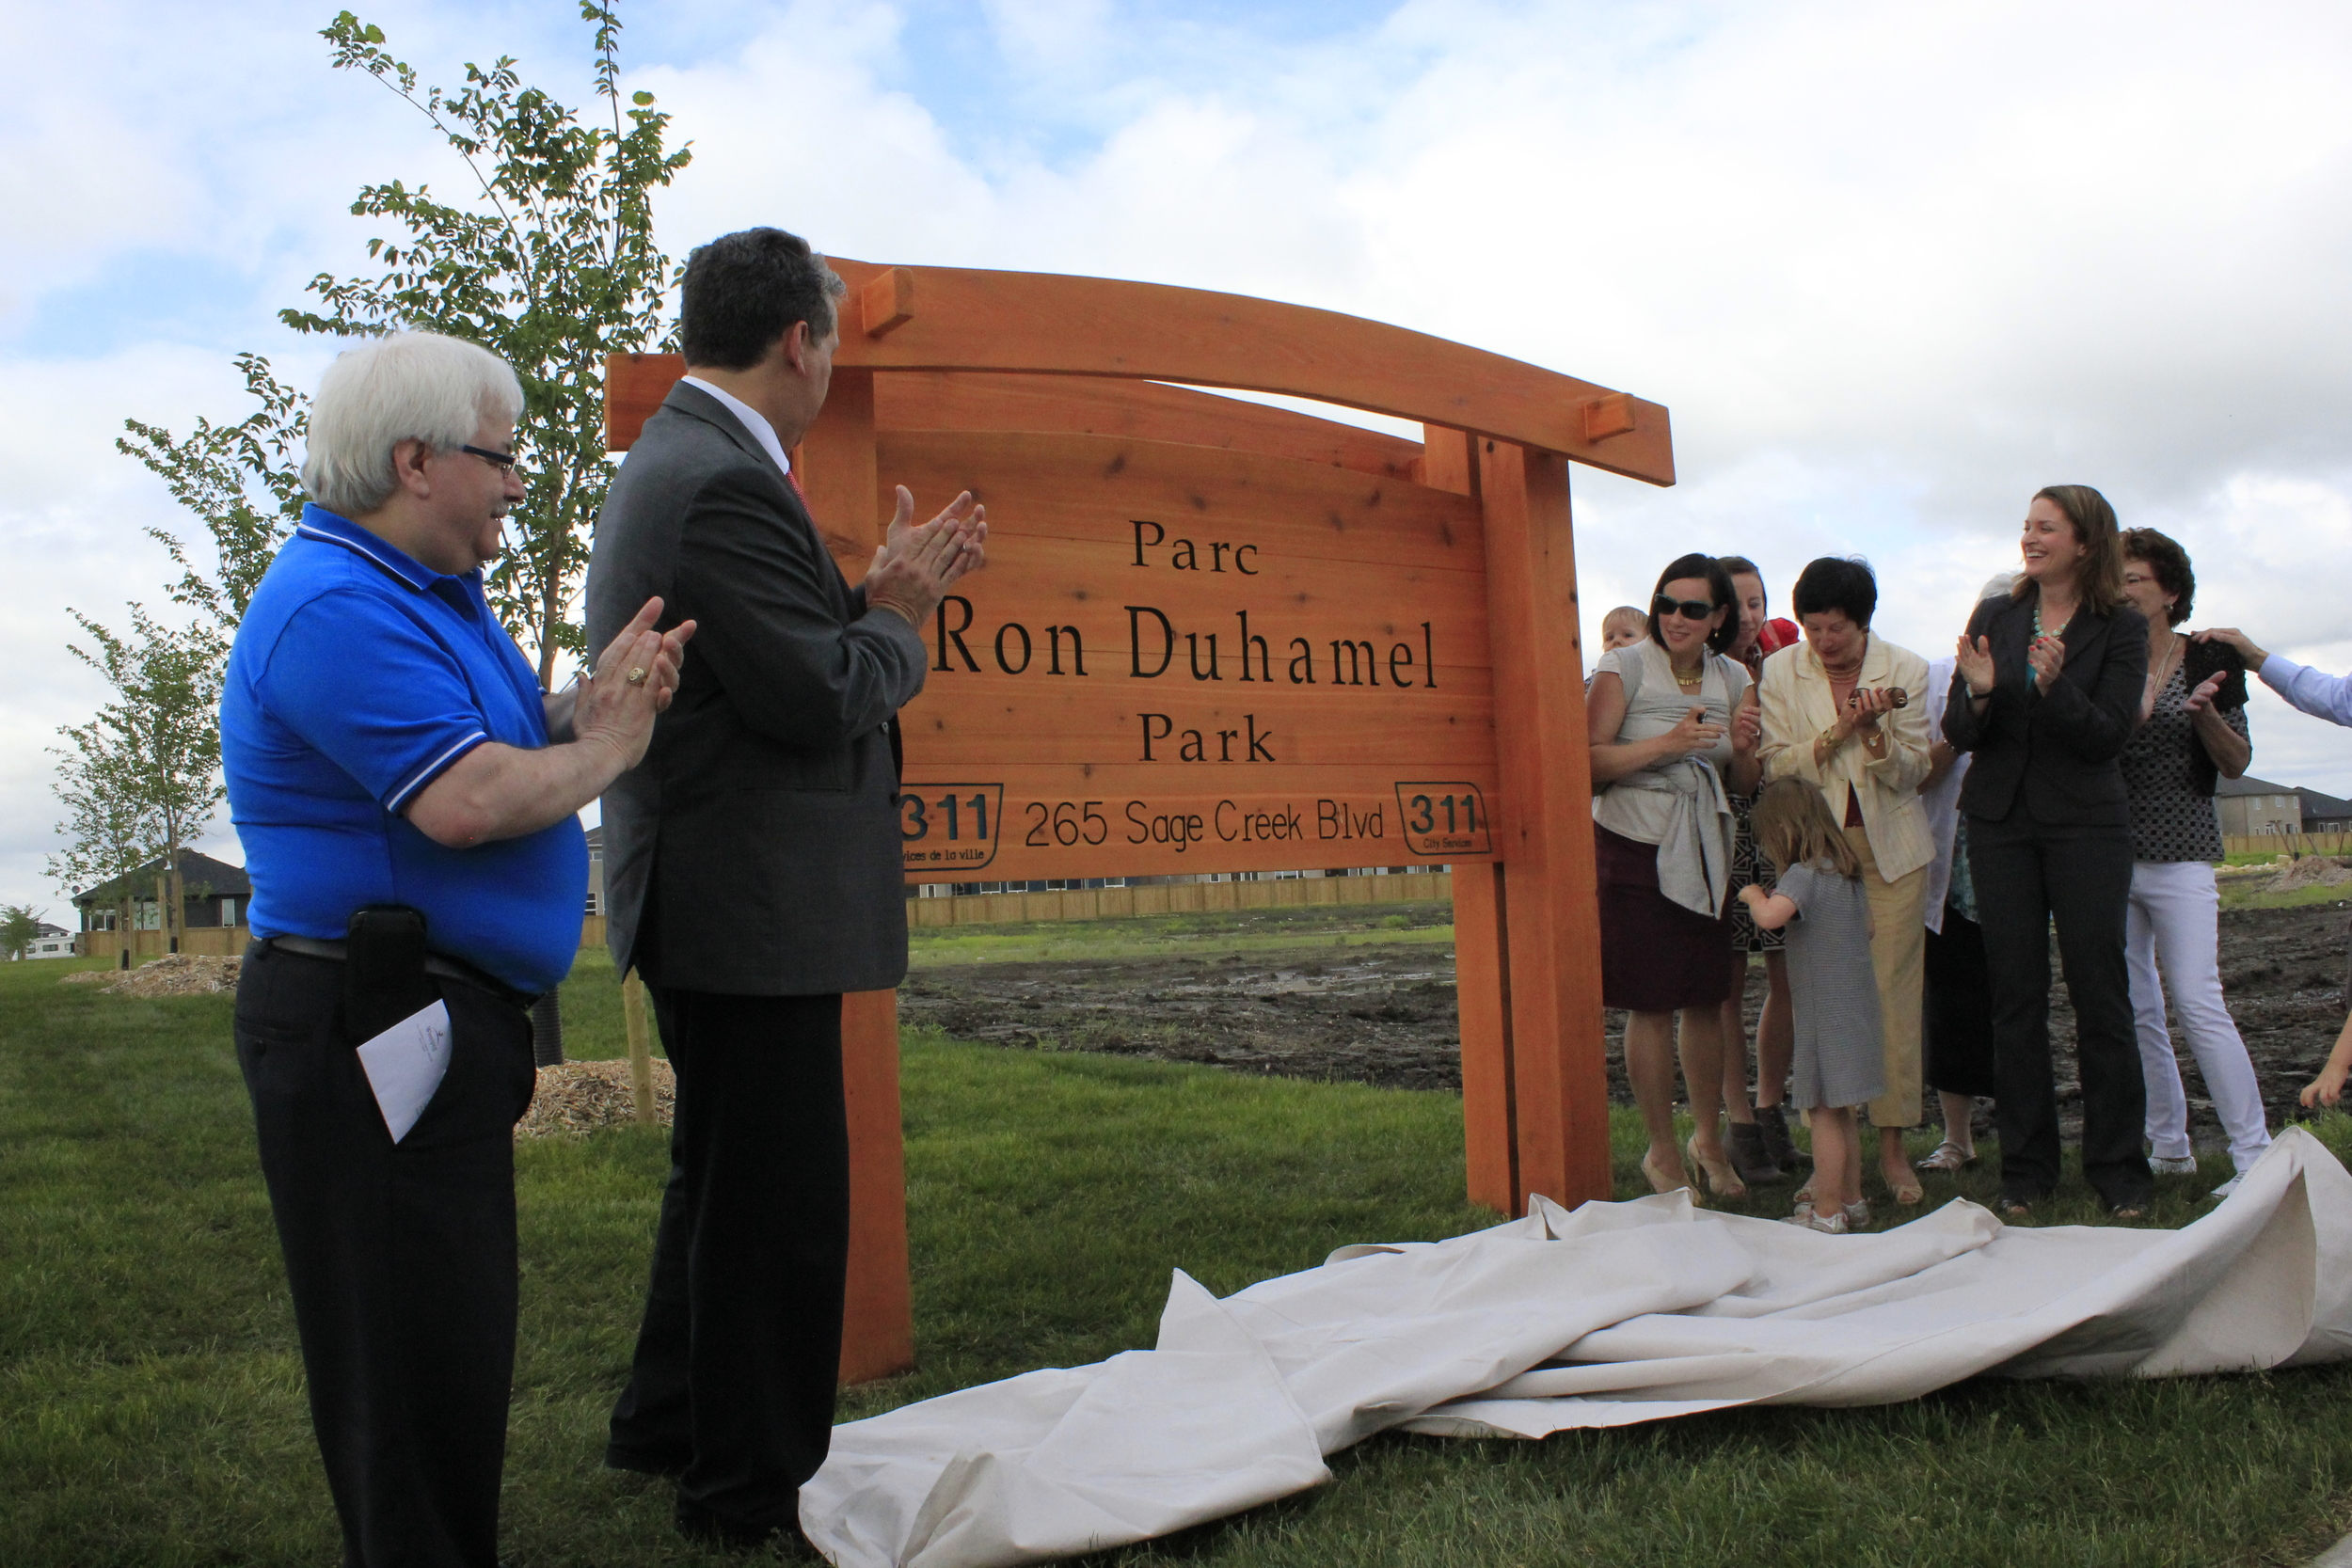 Left to Right - SCRA President Frank Capasso, Councillor Dan Vandal, the Duhamel family, and MLA Erin Selbytake part in the unveiling of the Parc Ron Duhamel Park sign.